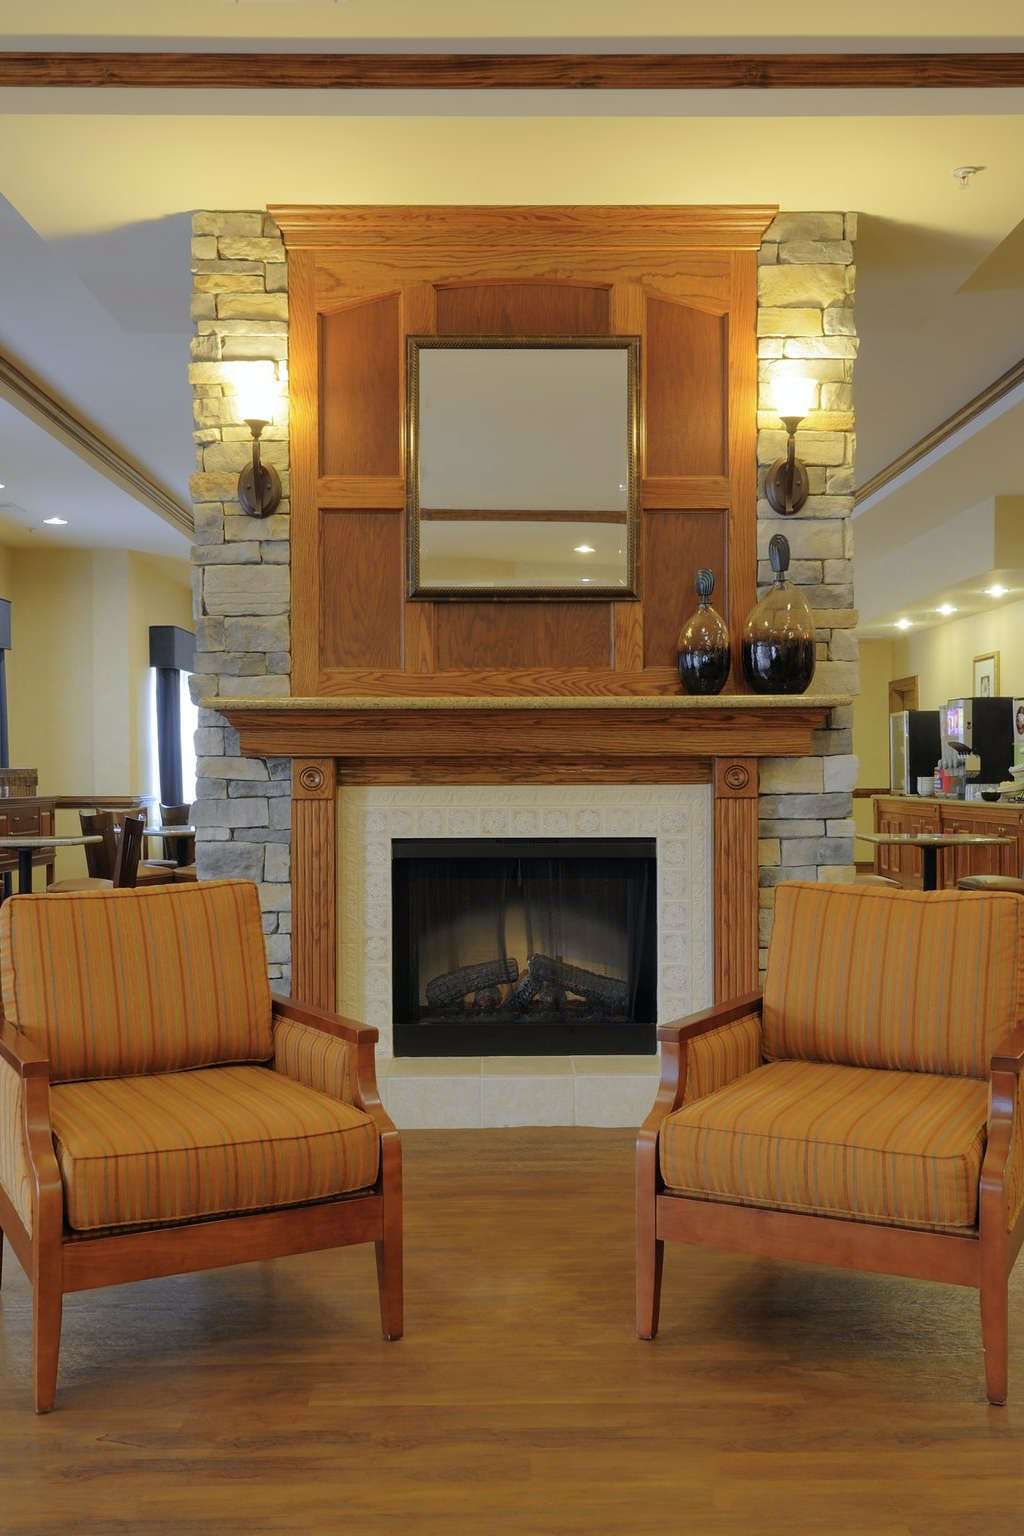 Country Inn & Suites by Radisson, Columbia at Harbison, SC